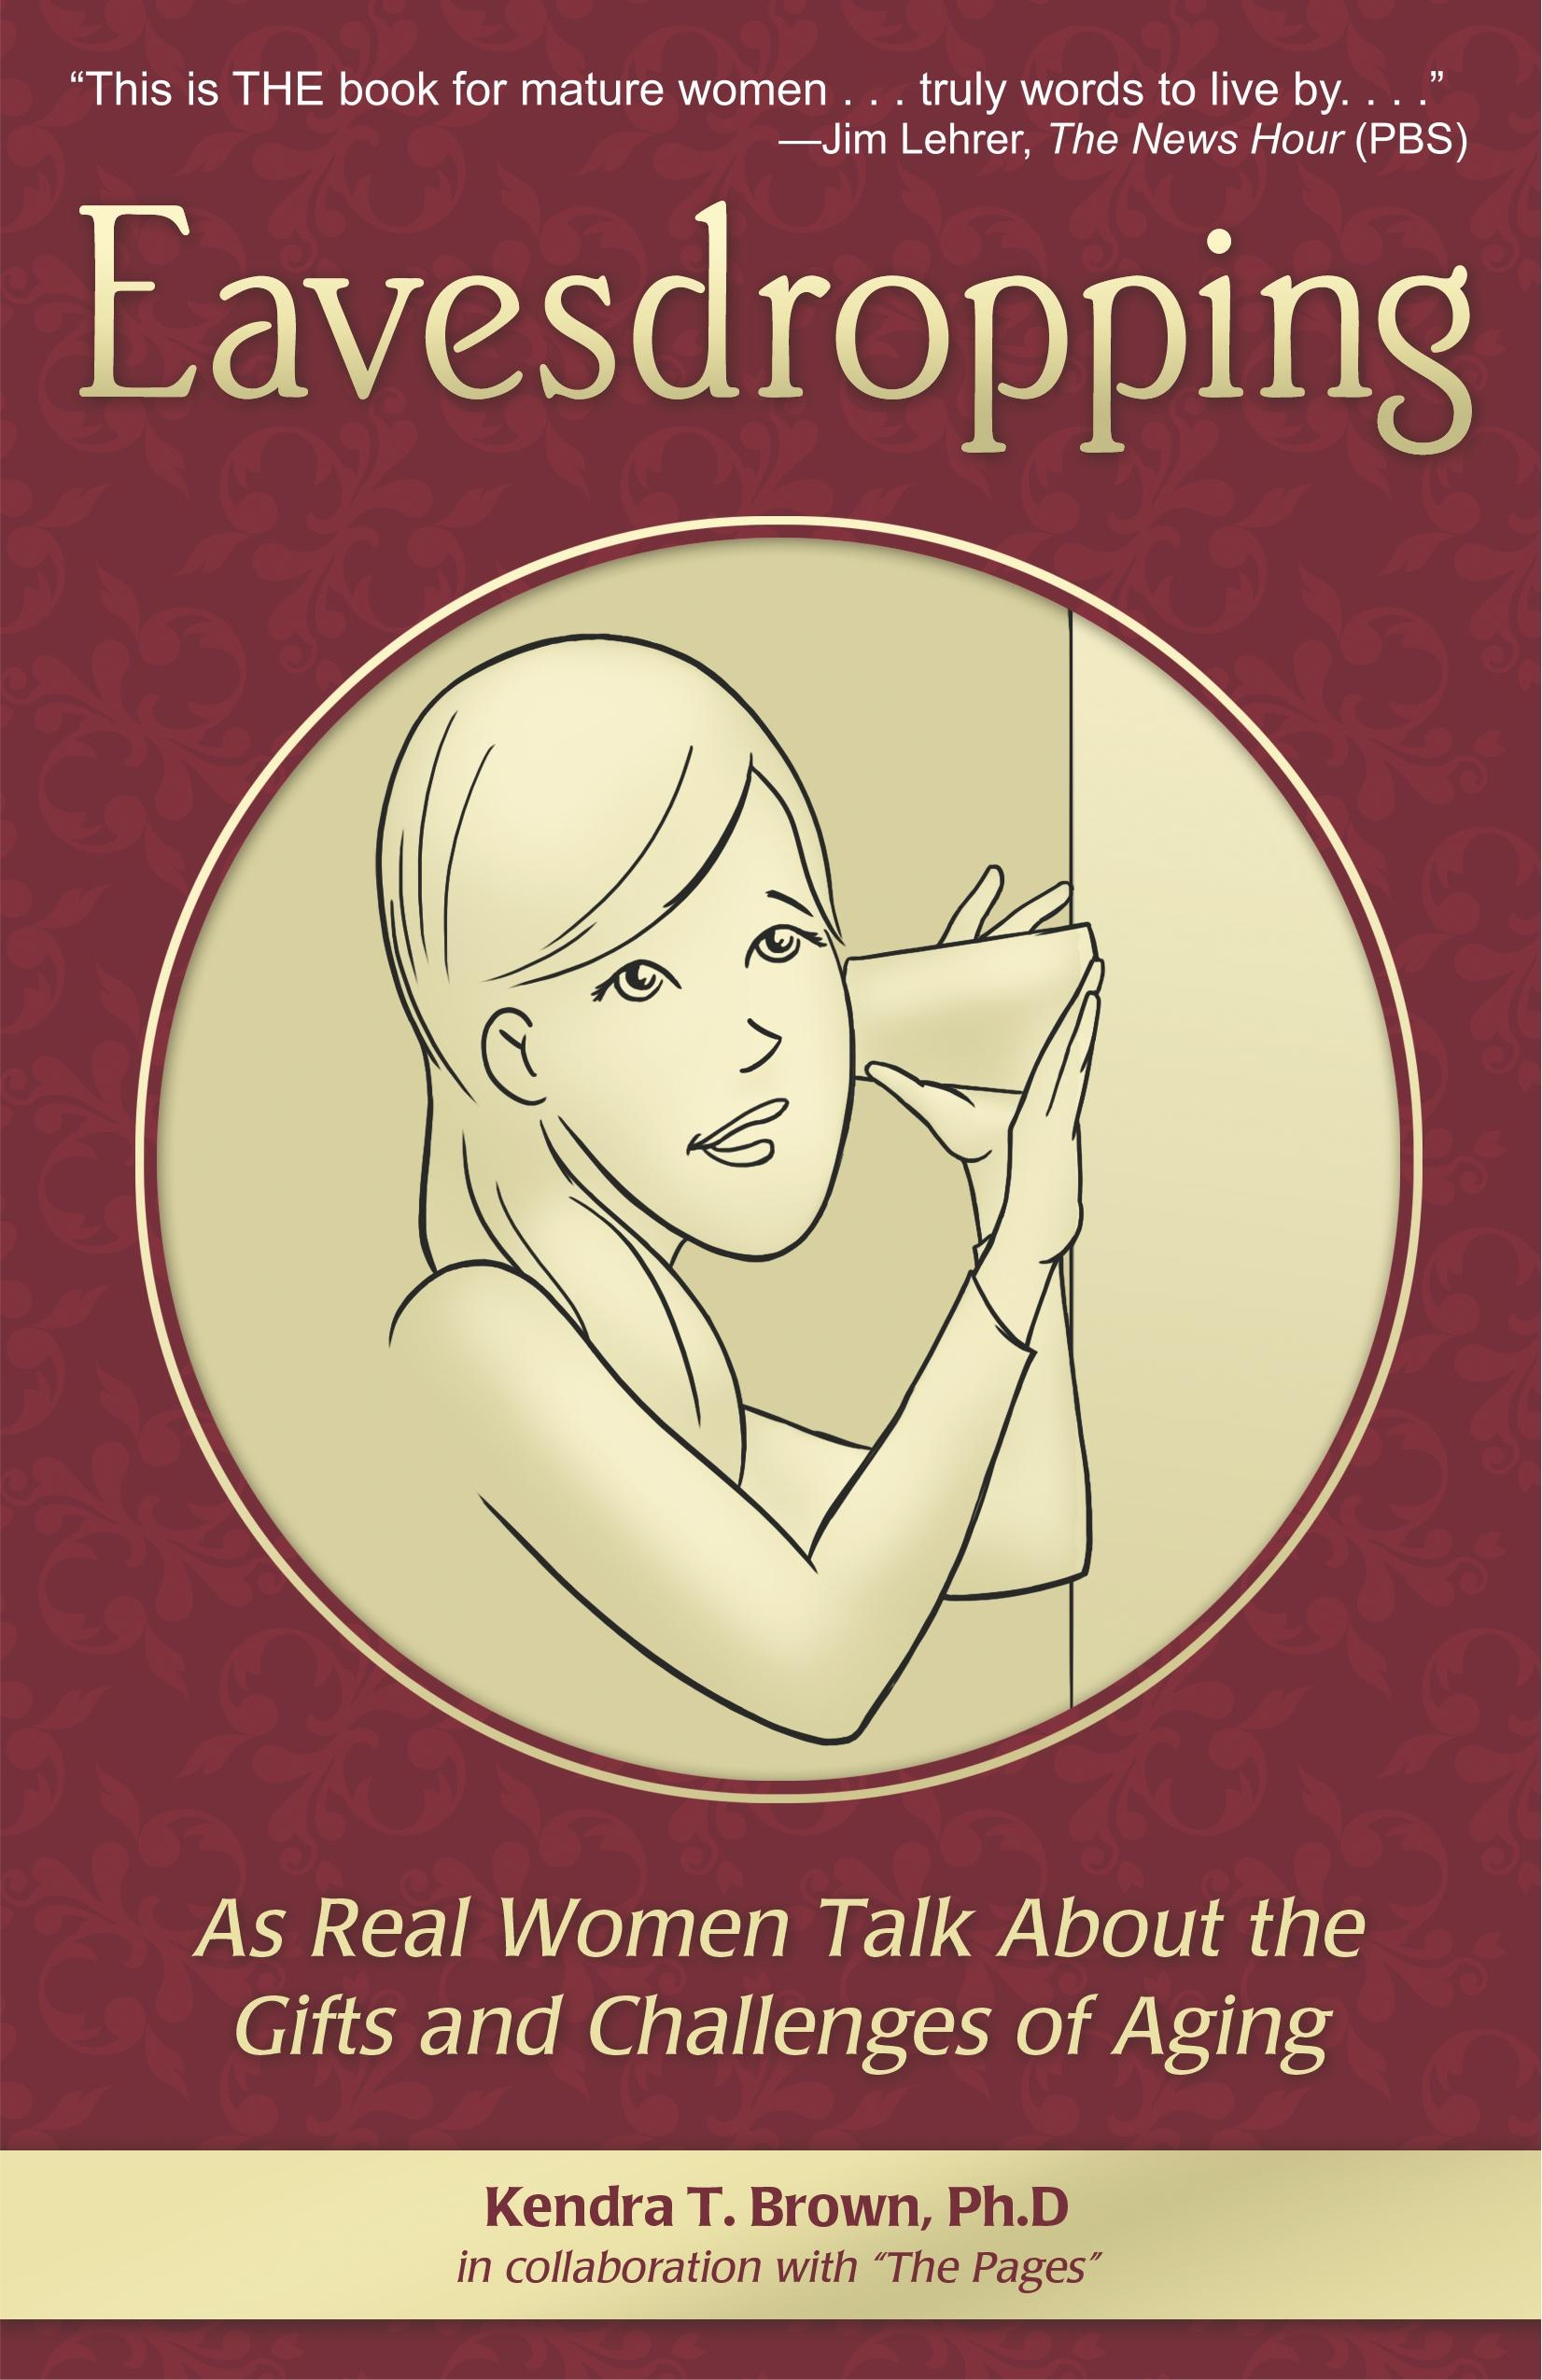 Eavesdropping: As Real Women Talk About the Gifts and Challenges of Aging EB9781568251530